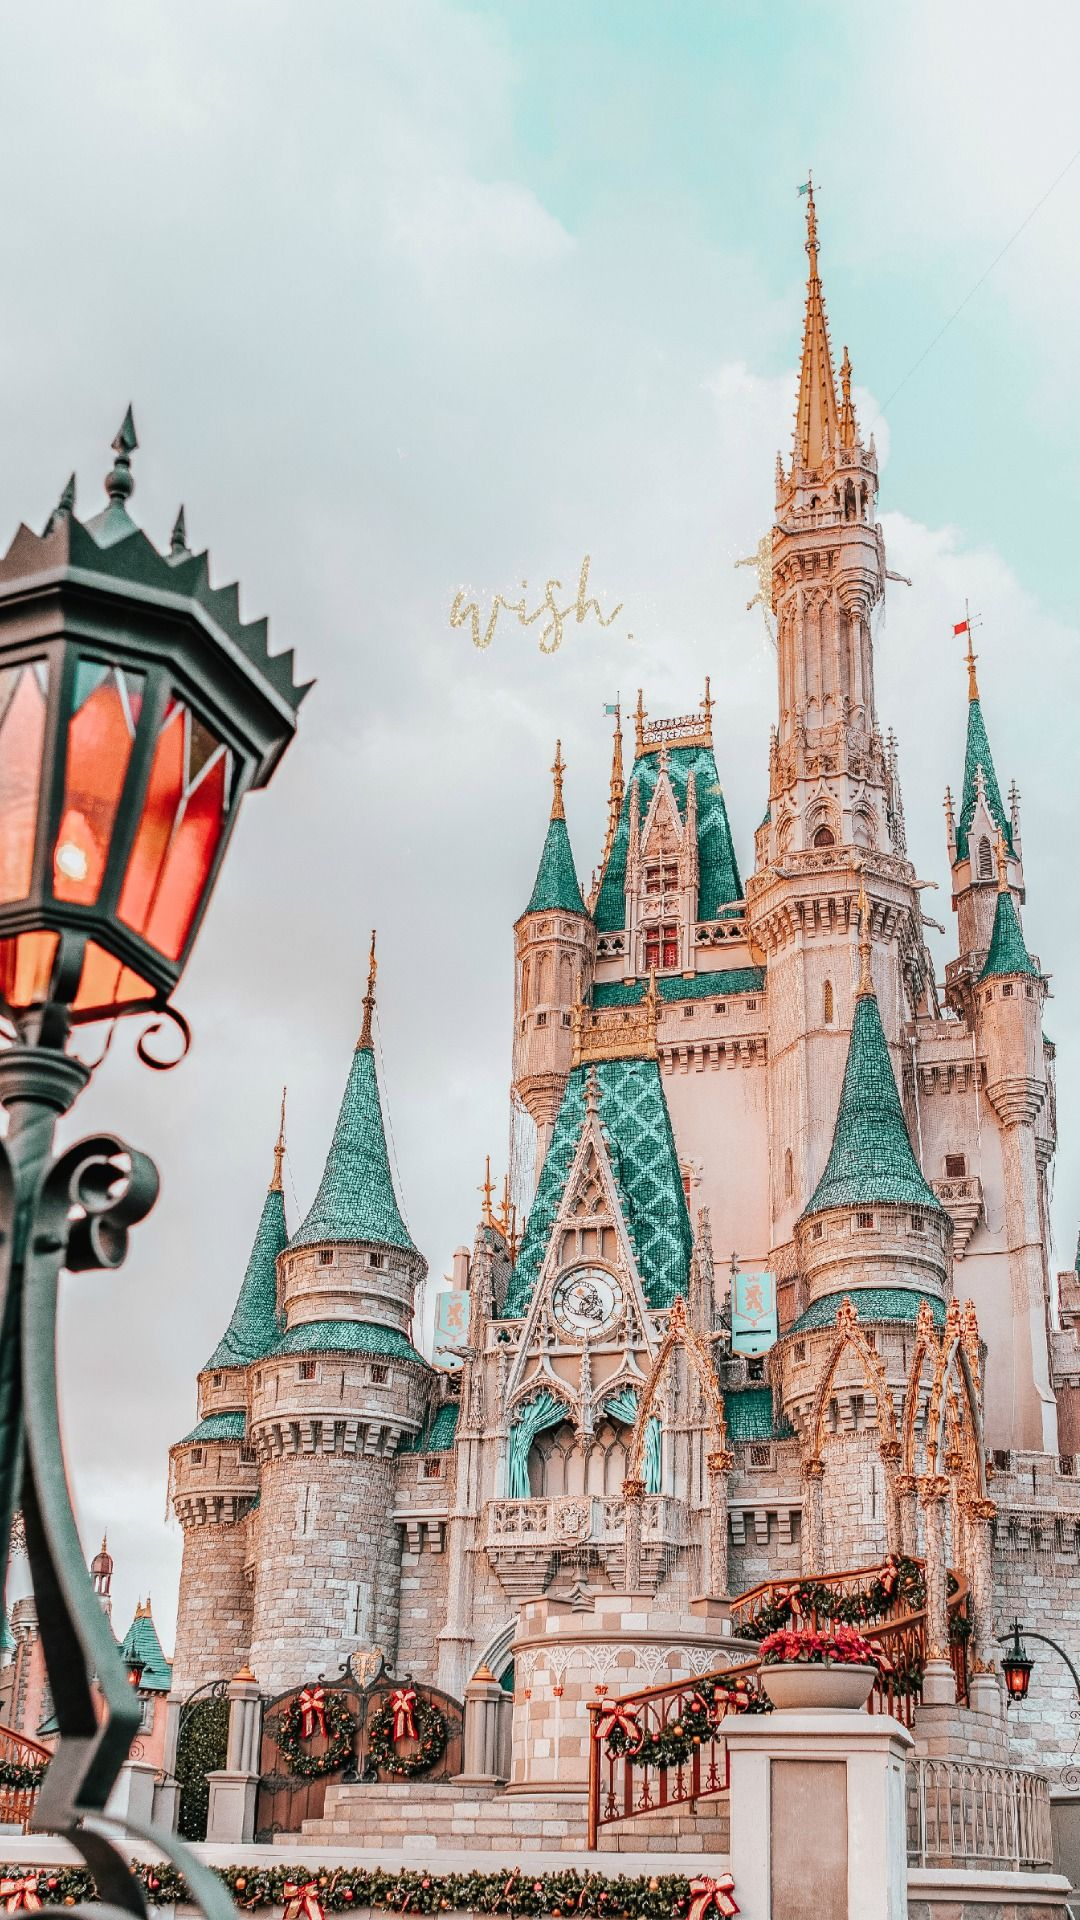 31 Free Amazing Fall Iphone Wallpaper Backgrounds For Fall Aesthetic Cute Autumn Wallpapers In 2020 Wallpaper Iphone Disney Disney Phone Wallpaper Disney Wallpaper